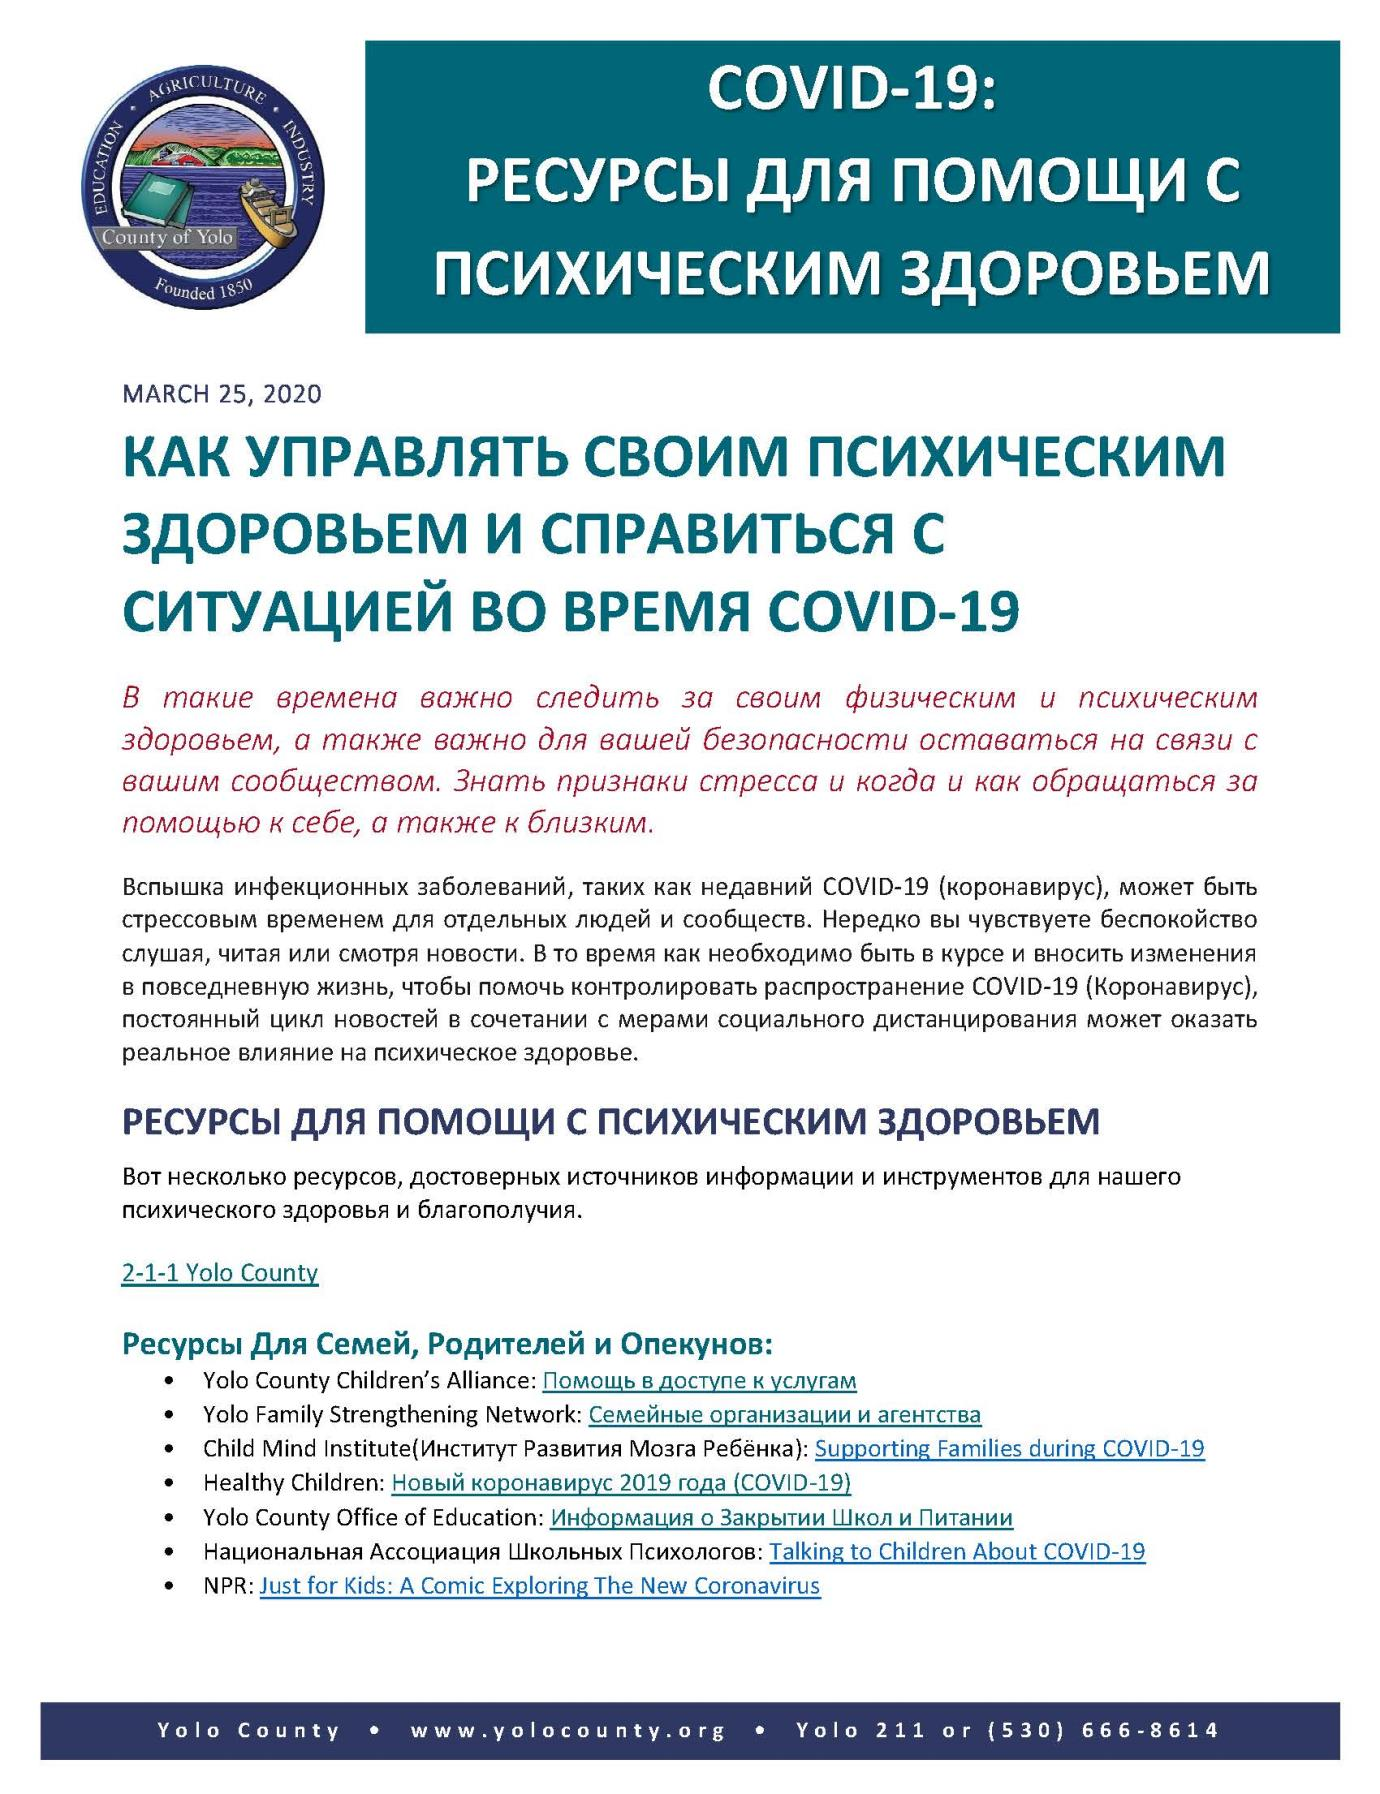 DRAFT COVID 19 Mental Health Resources- Russian- 3.27.20